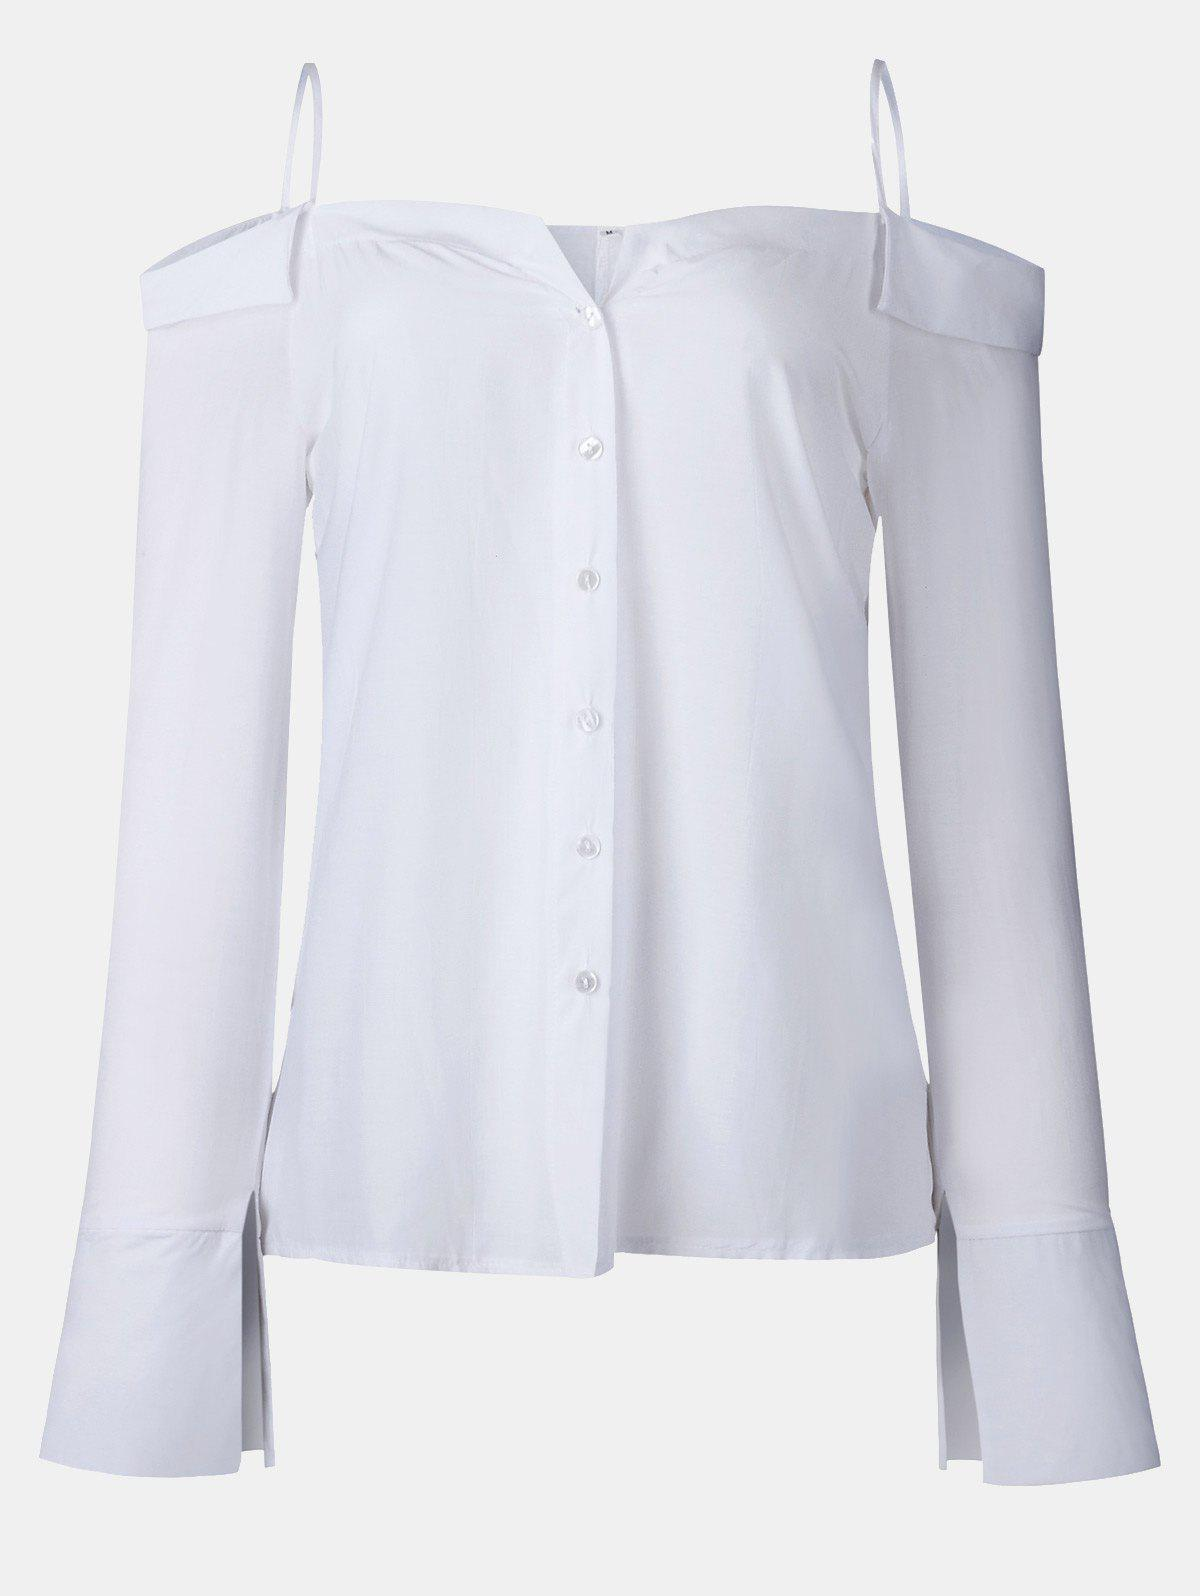 Women's Solid Color Dew Shoulder Long Sleeved Button-down Tops - WHITE XL